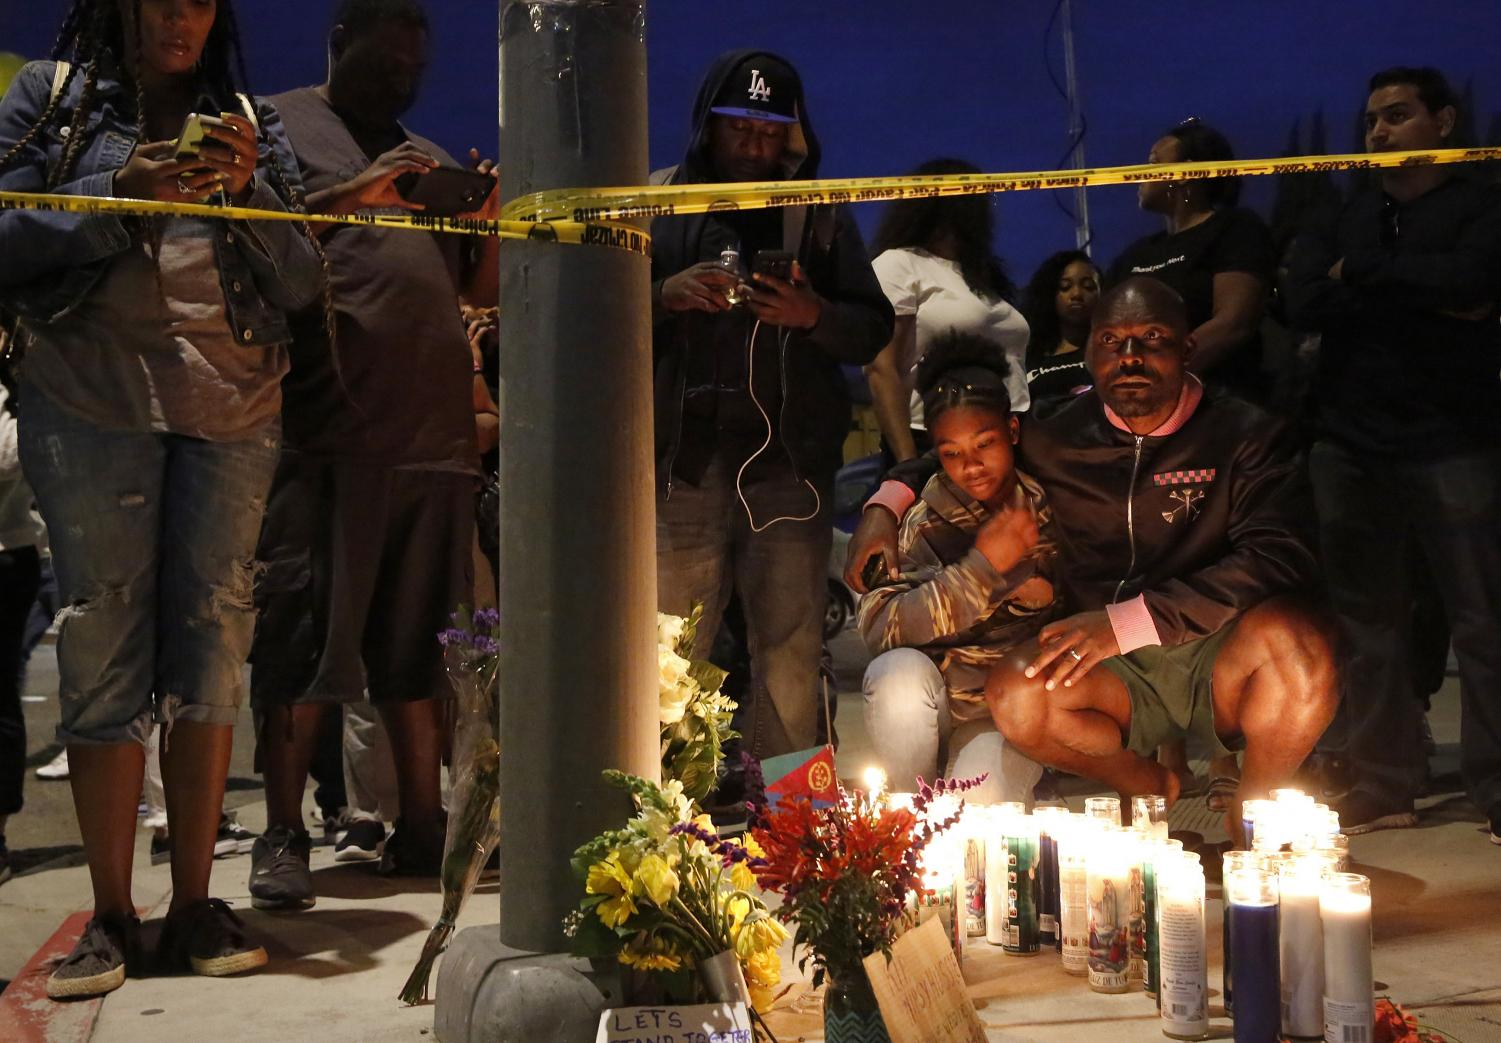 Haitian-French actor Jimmy Jean-Louis and his daughter Jasmin, 16, gather around candles set up across from the clothing store of rapper Nipsey Hussle in Los Angeles, on Sunday, March 31, 2019. Hussle, the skilled and respected West Coast rapper who had a decade-long success with mixtapes but hit new heights with his Grammy-nominated major-label debut album in 2018, was killed at the age of 33.